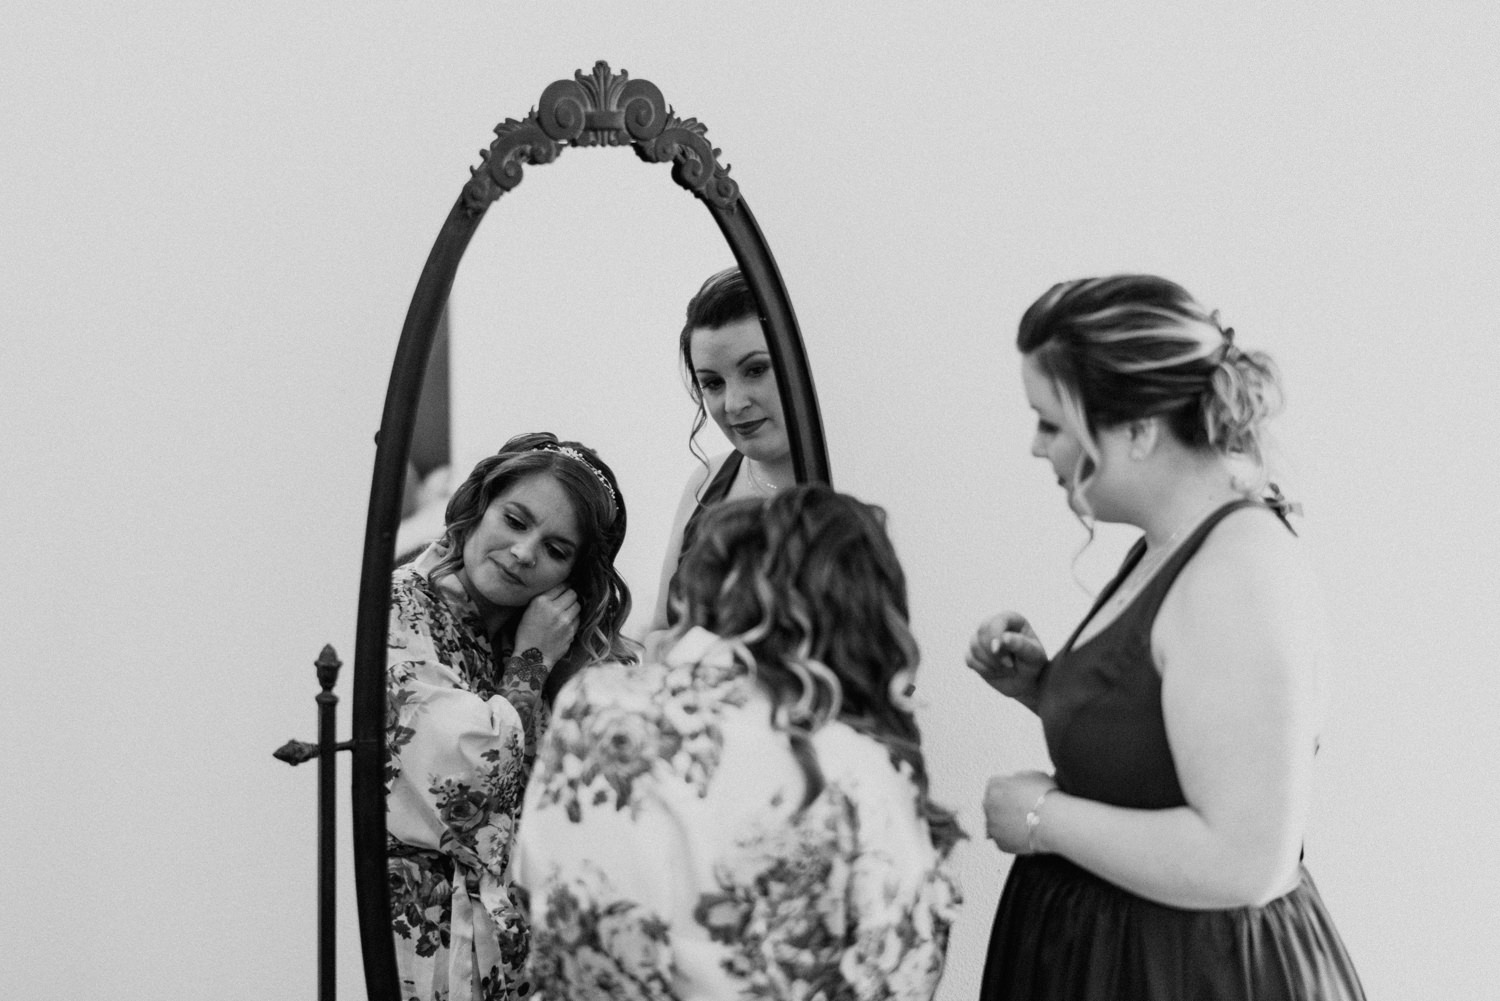 maid of honor and bride getting ready at wedding